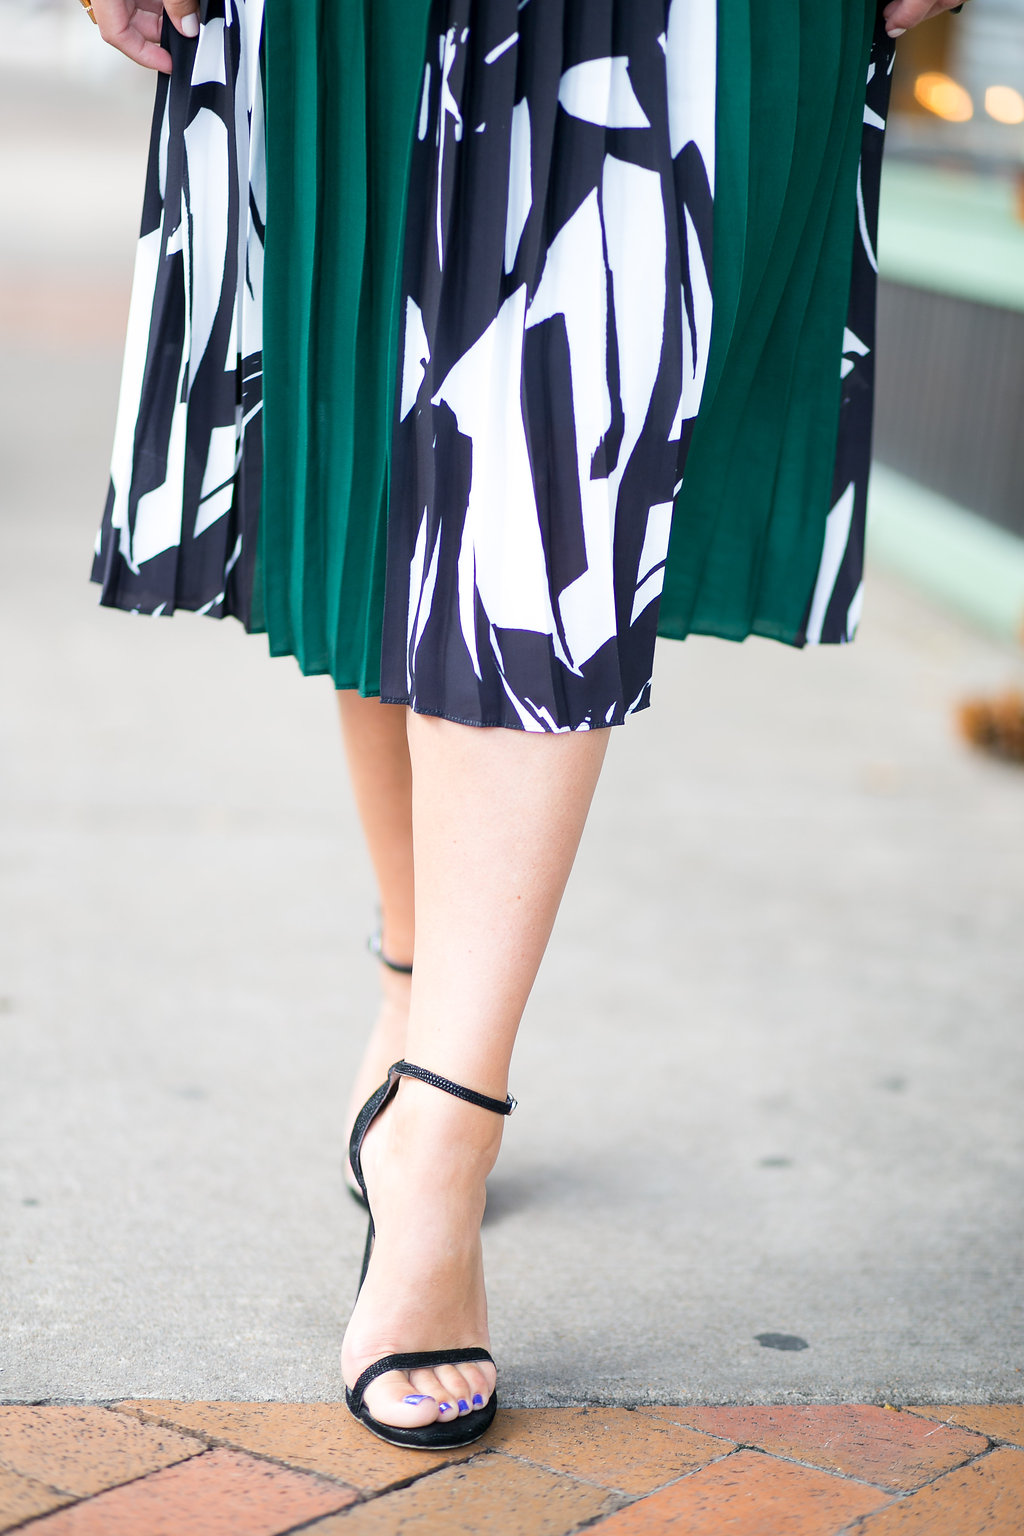 Chiffon Skirt | Dallas Fashion